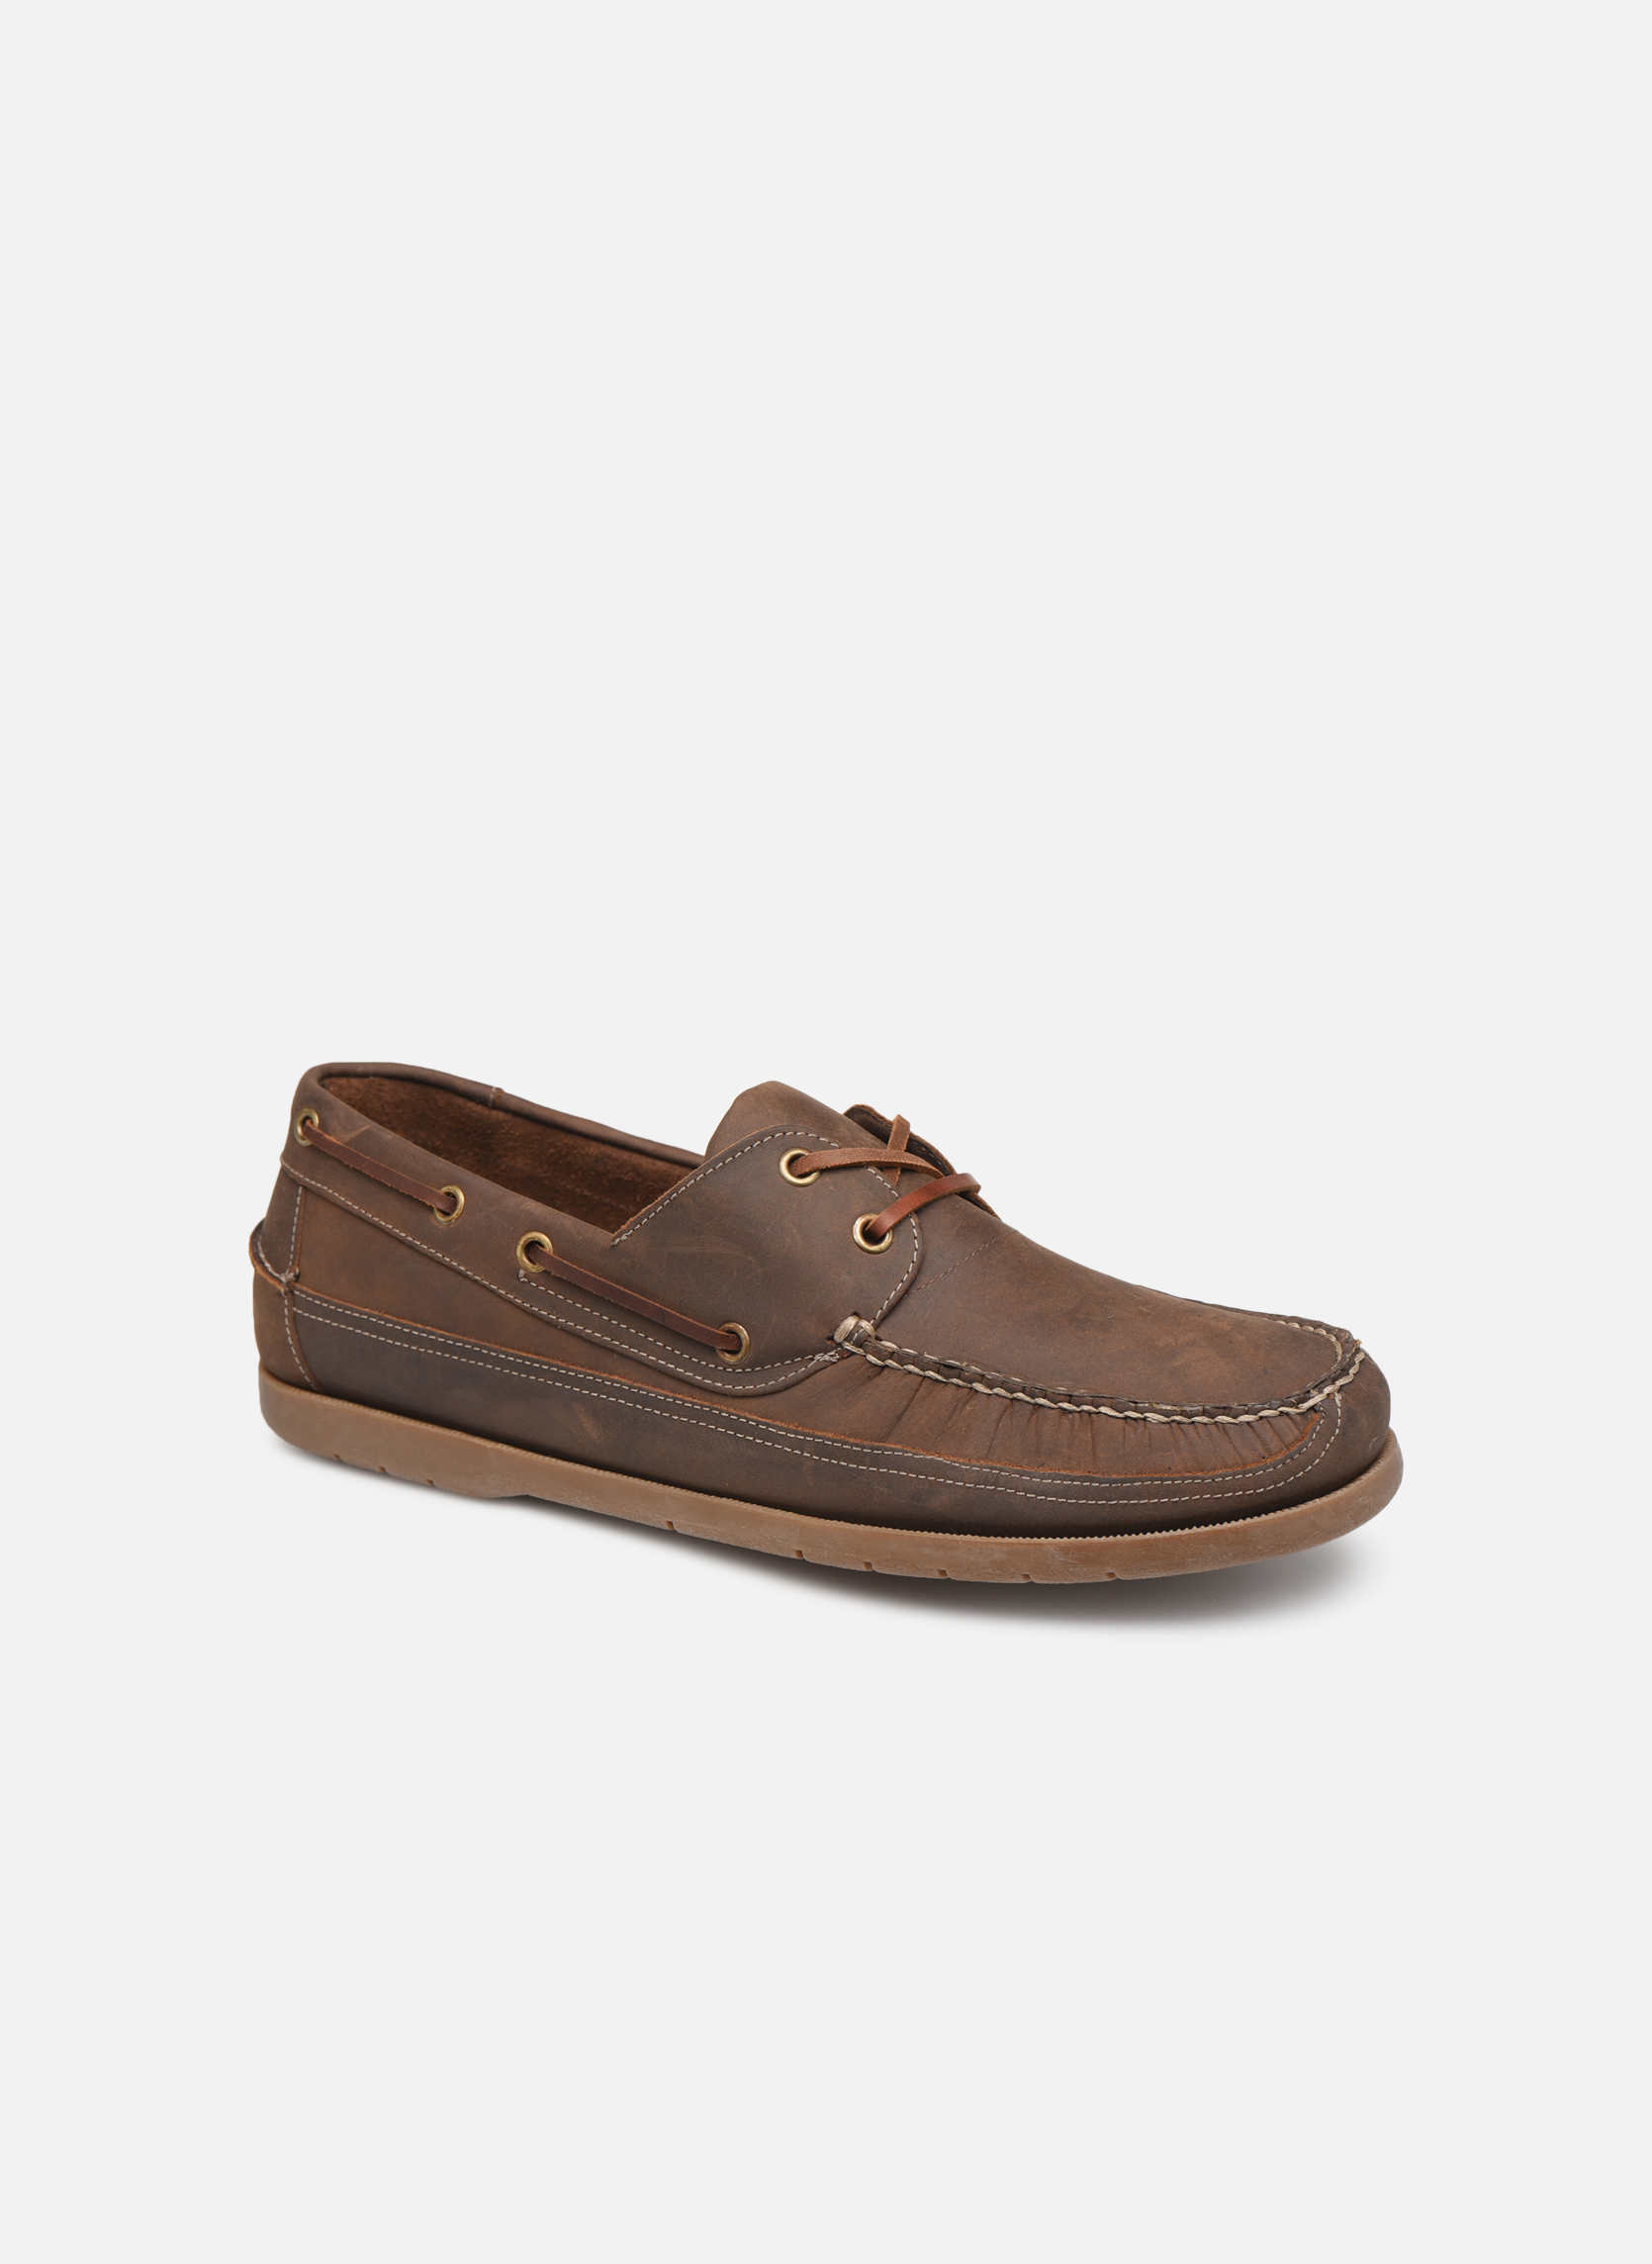 Veterschoenen Anatomic & Co Bruin